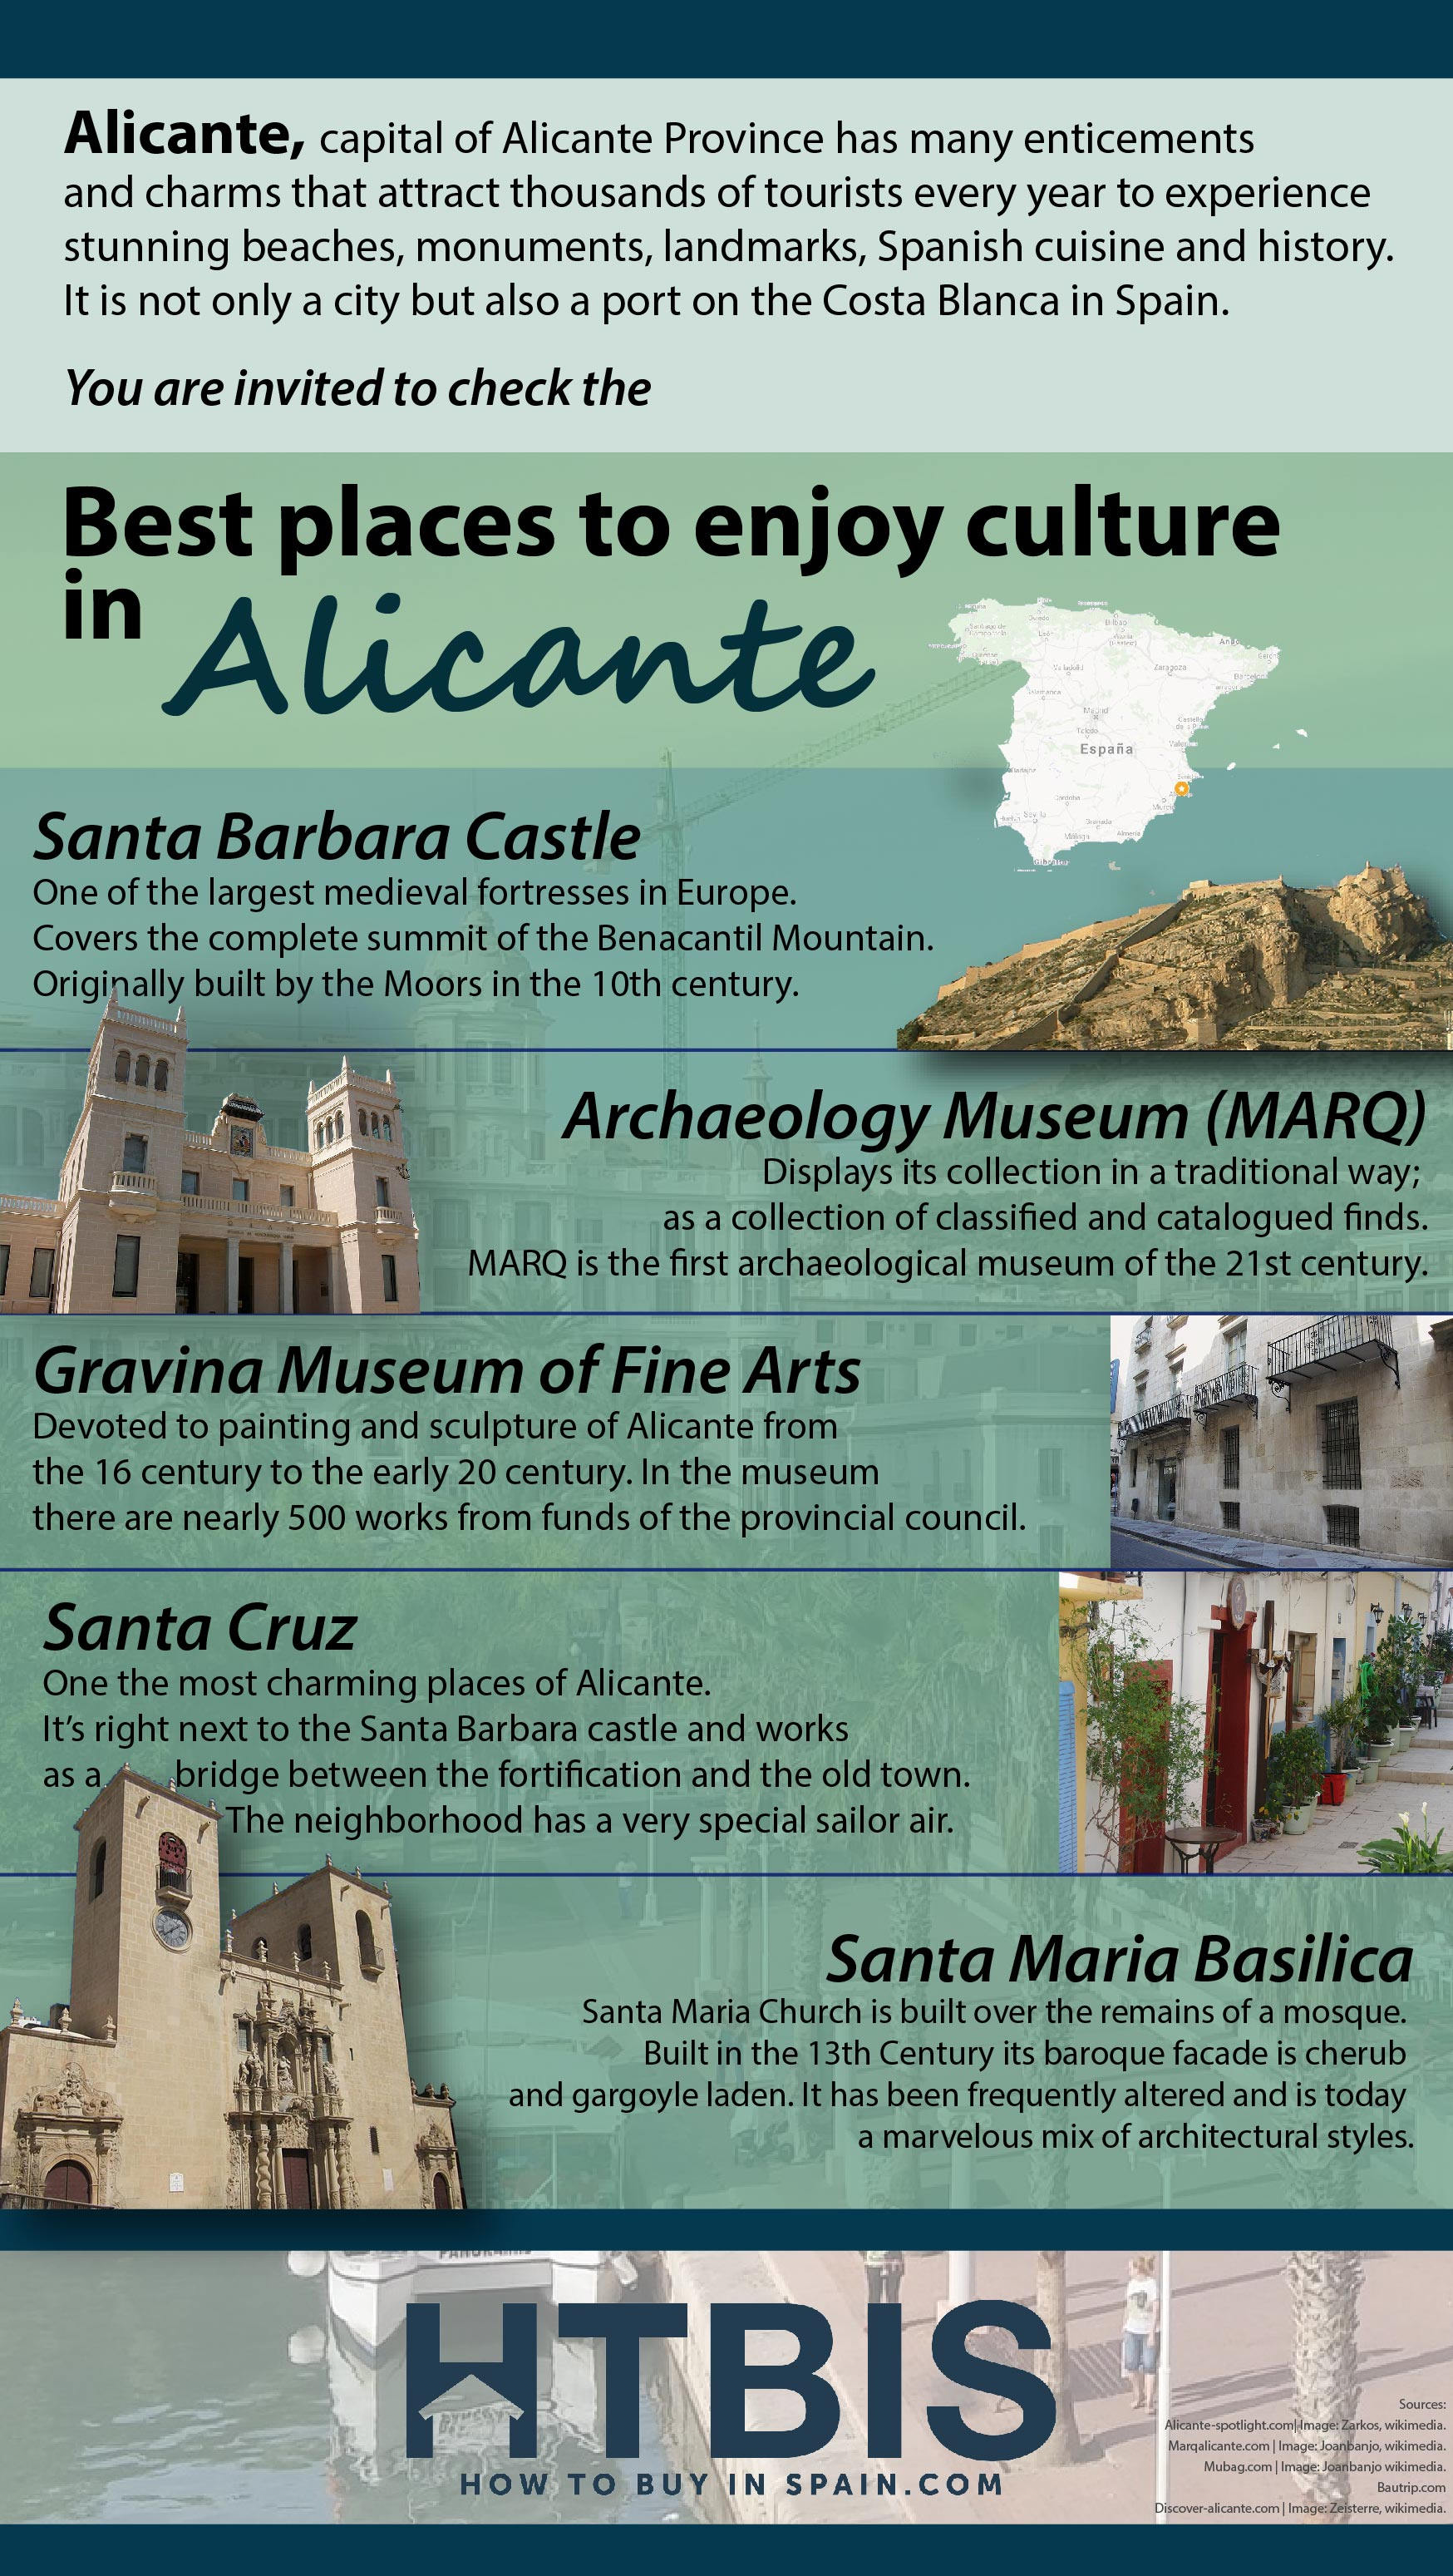 Alicante for Cultural lovers